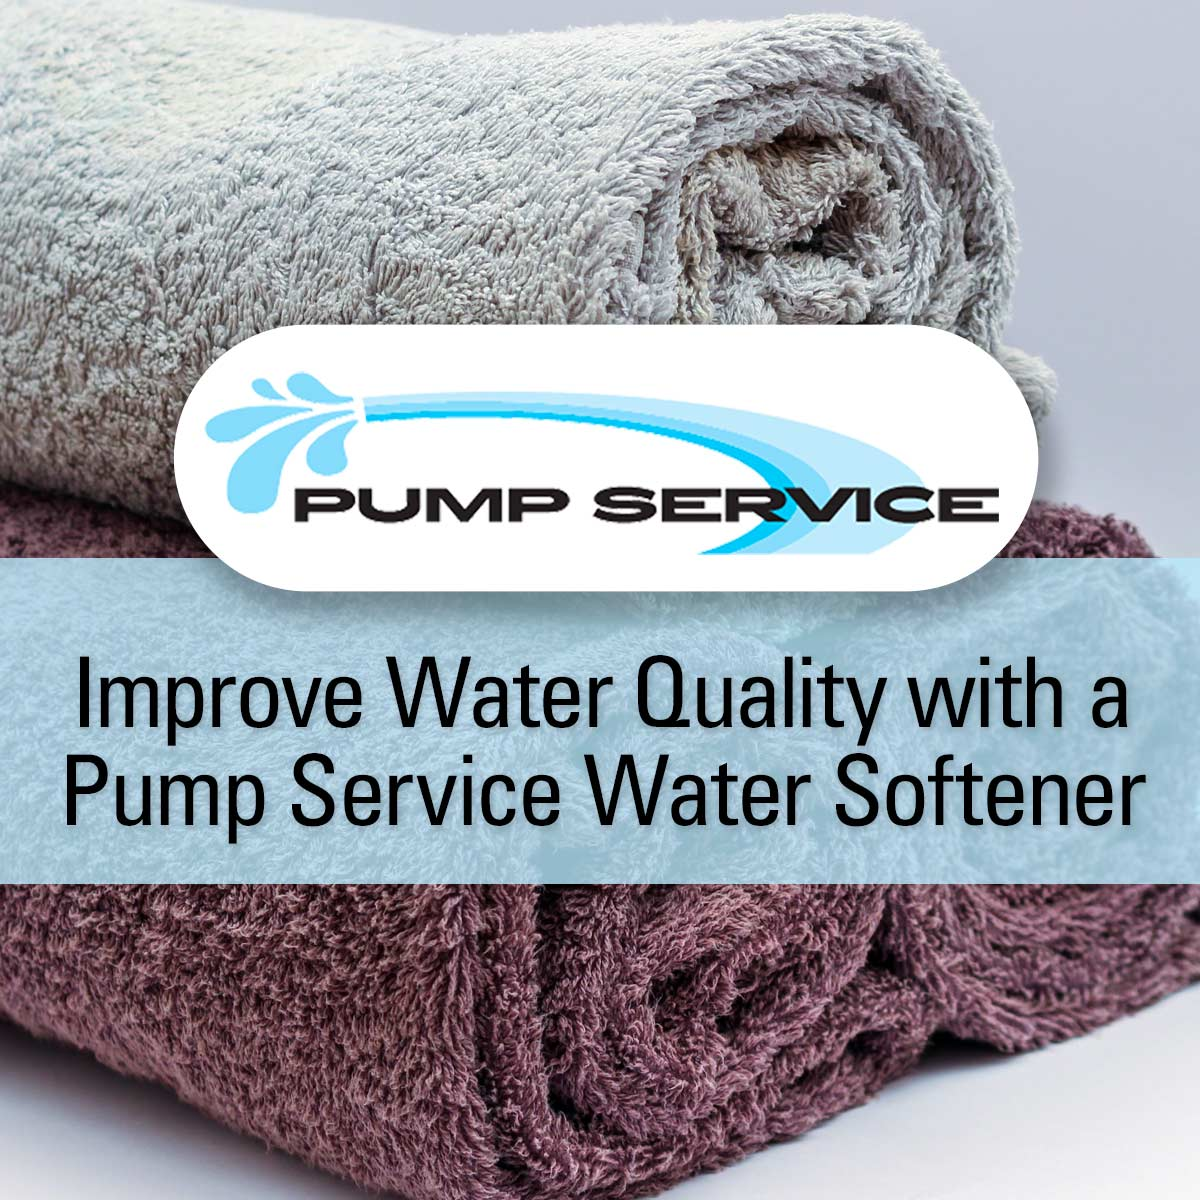 Improve Water Quality with a Pump Service Water Softener